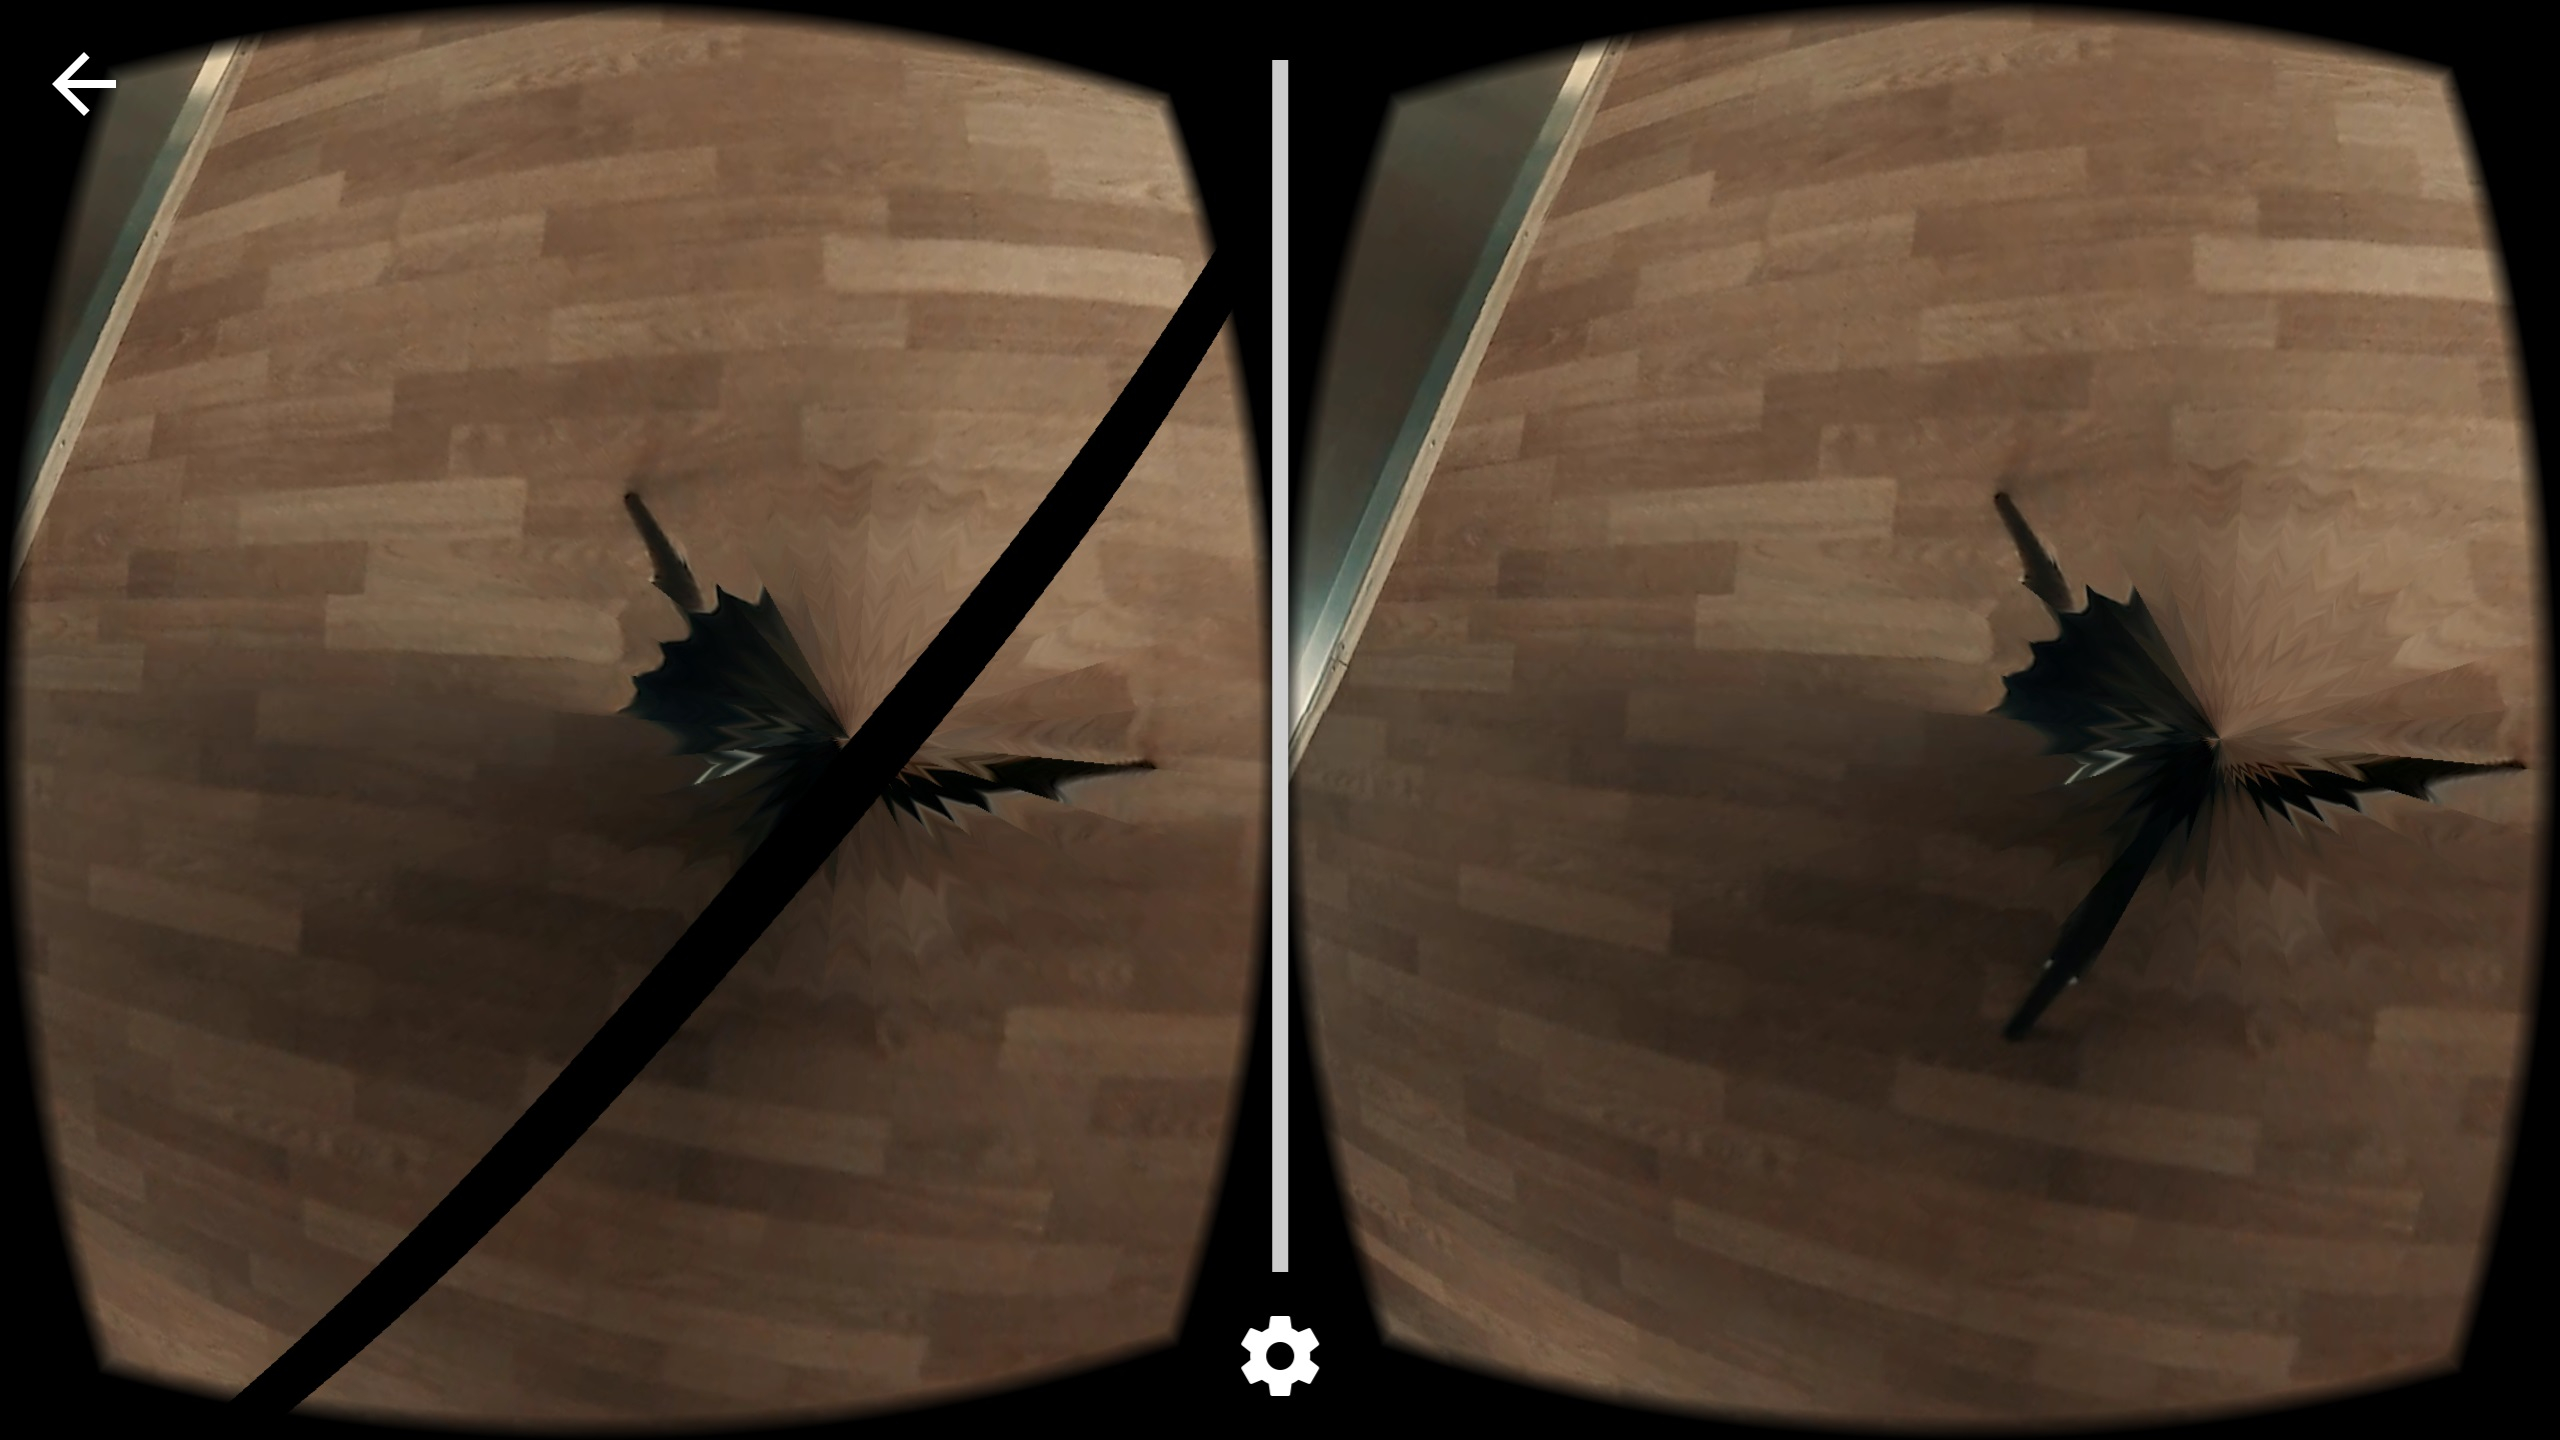 Artifacts while using google vr sdk - Unity Answers